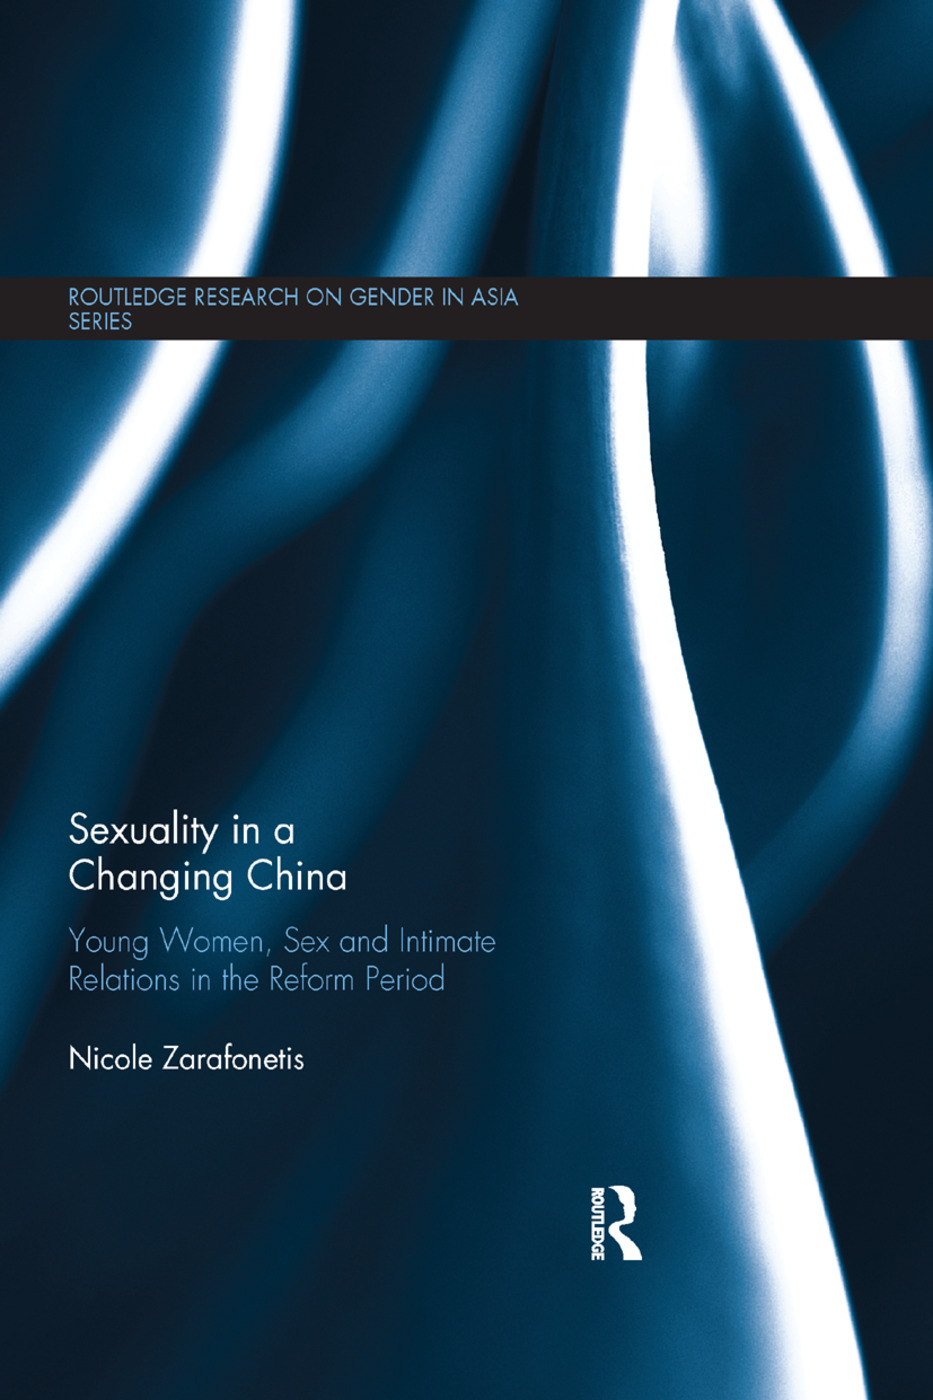 Sexuality in a Changing China: Young Women, Sex and Intimate Relations in the Reform Period book cover